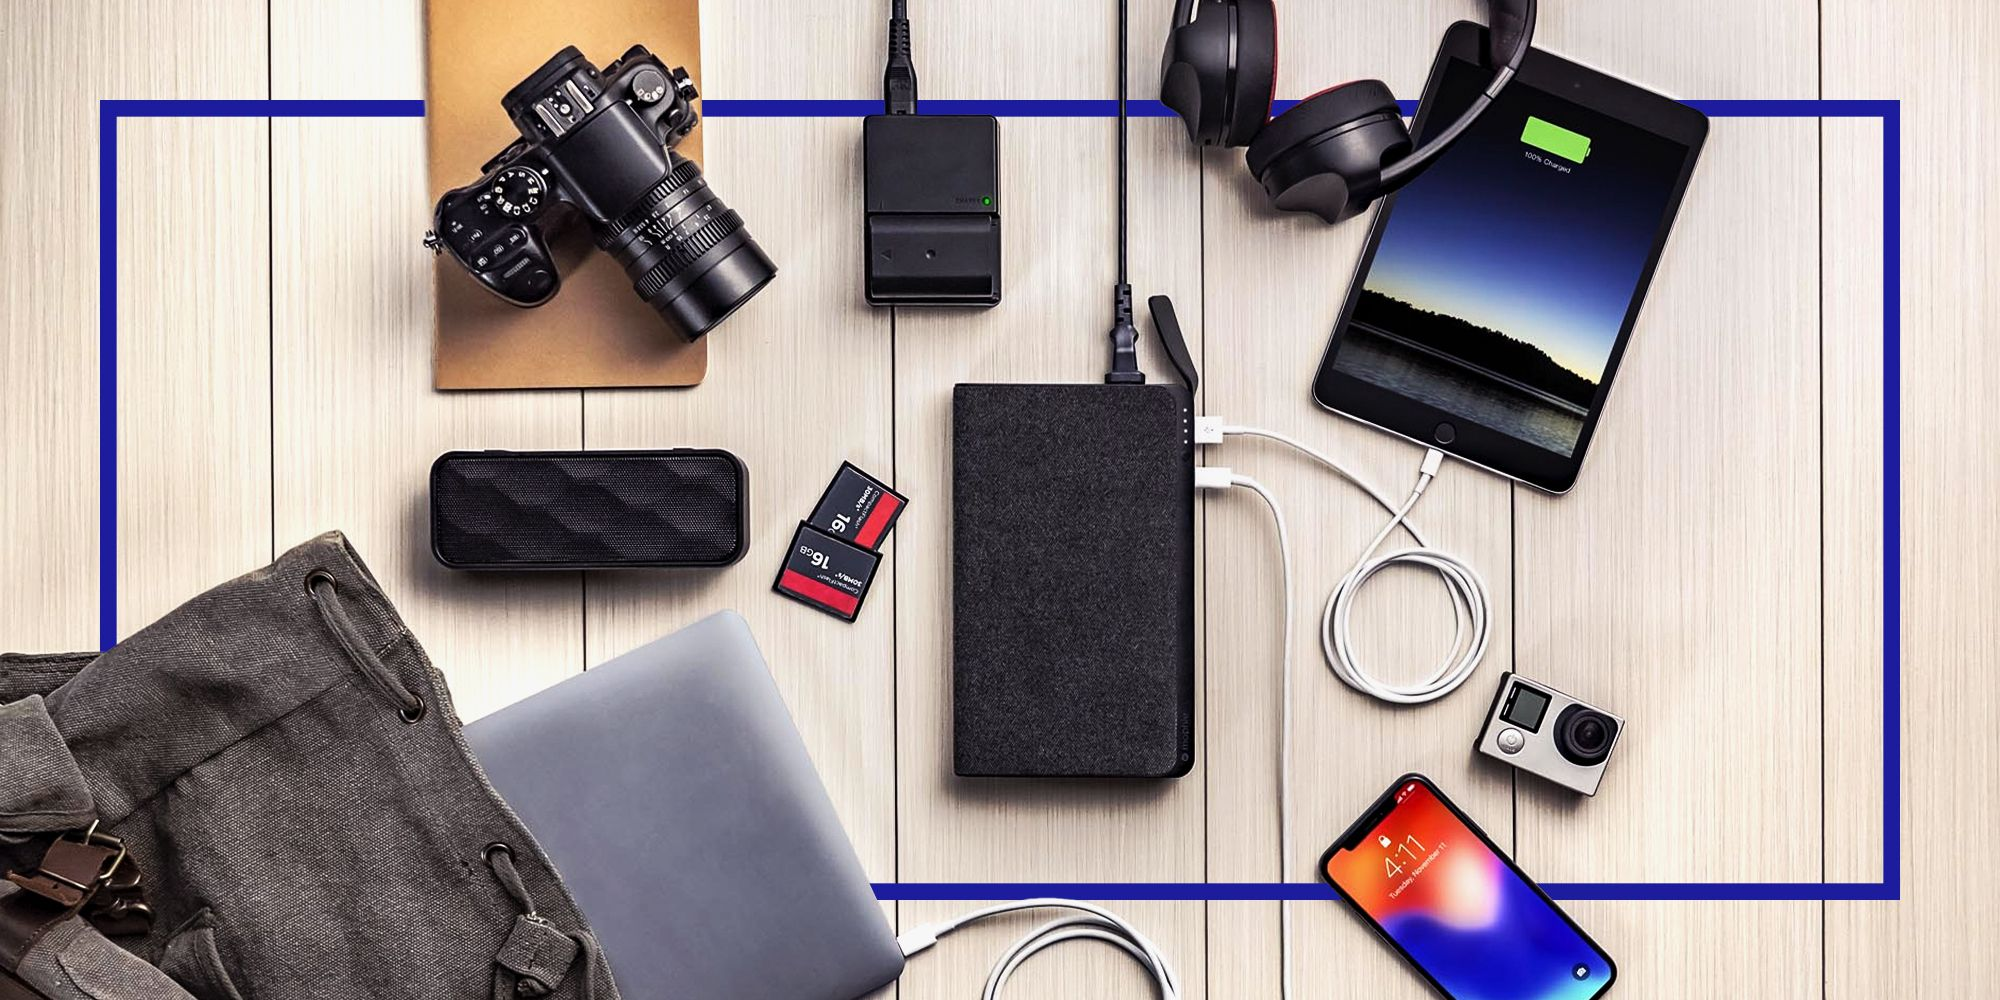 e6e575623625 20 Best Laptop Accessories for 2018 - Convenient Laptop Accessories    Gadgets